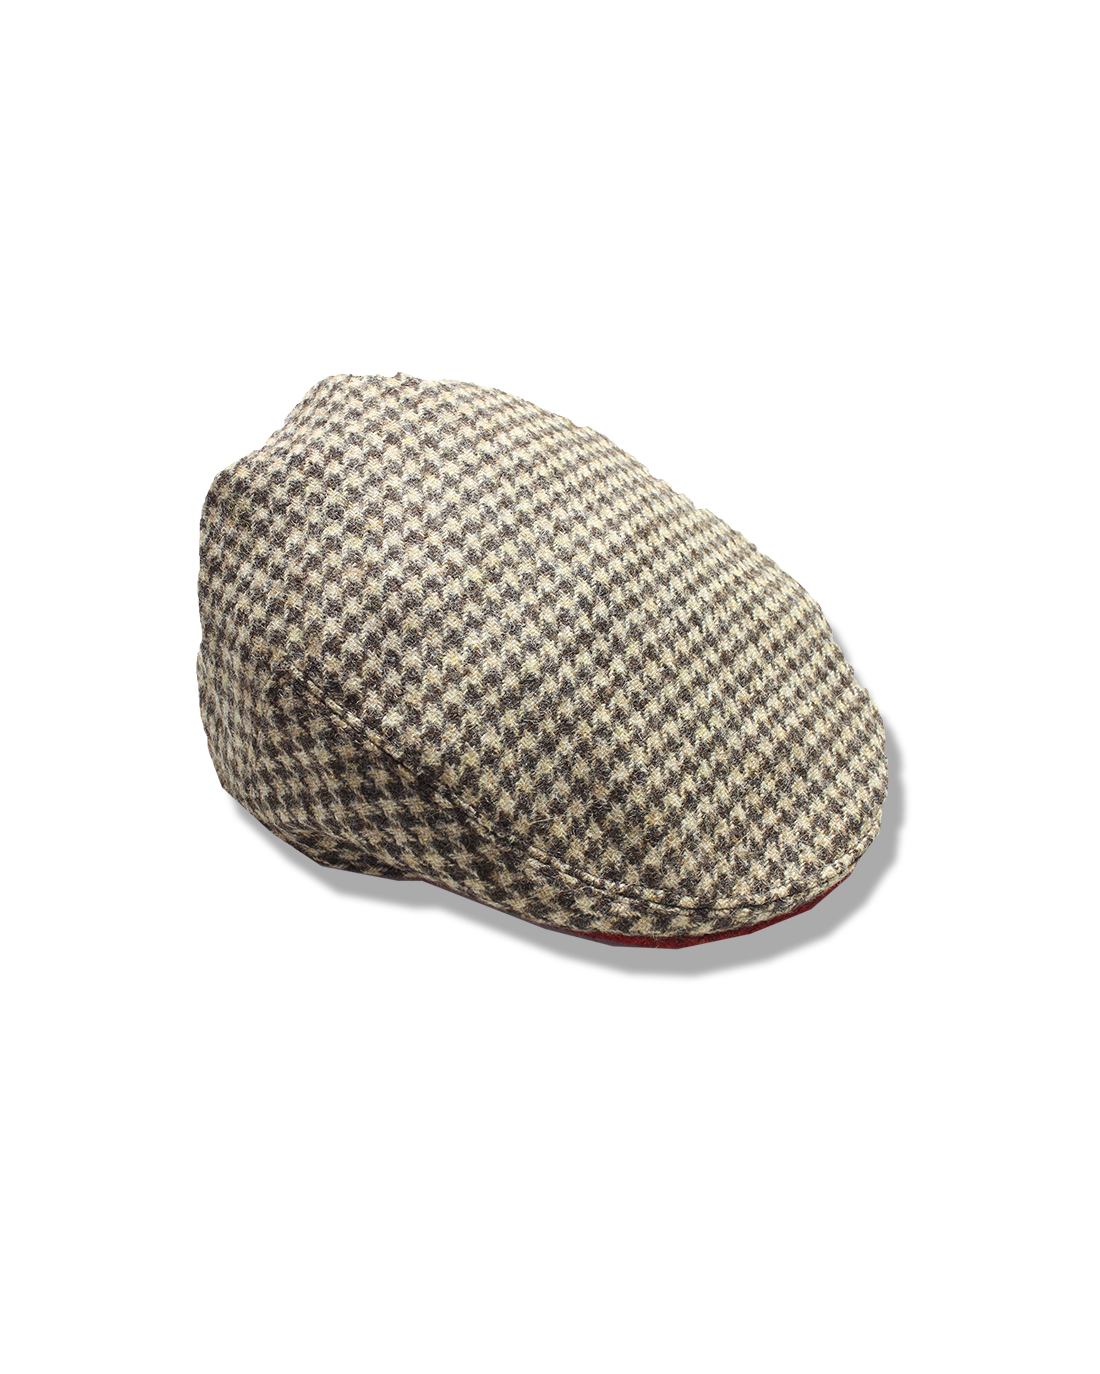 The DS Flat Cap